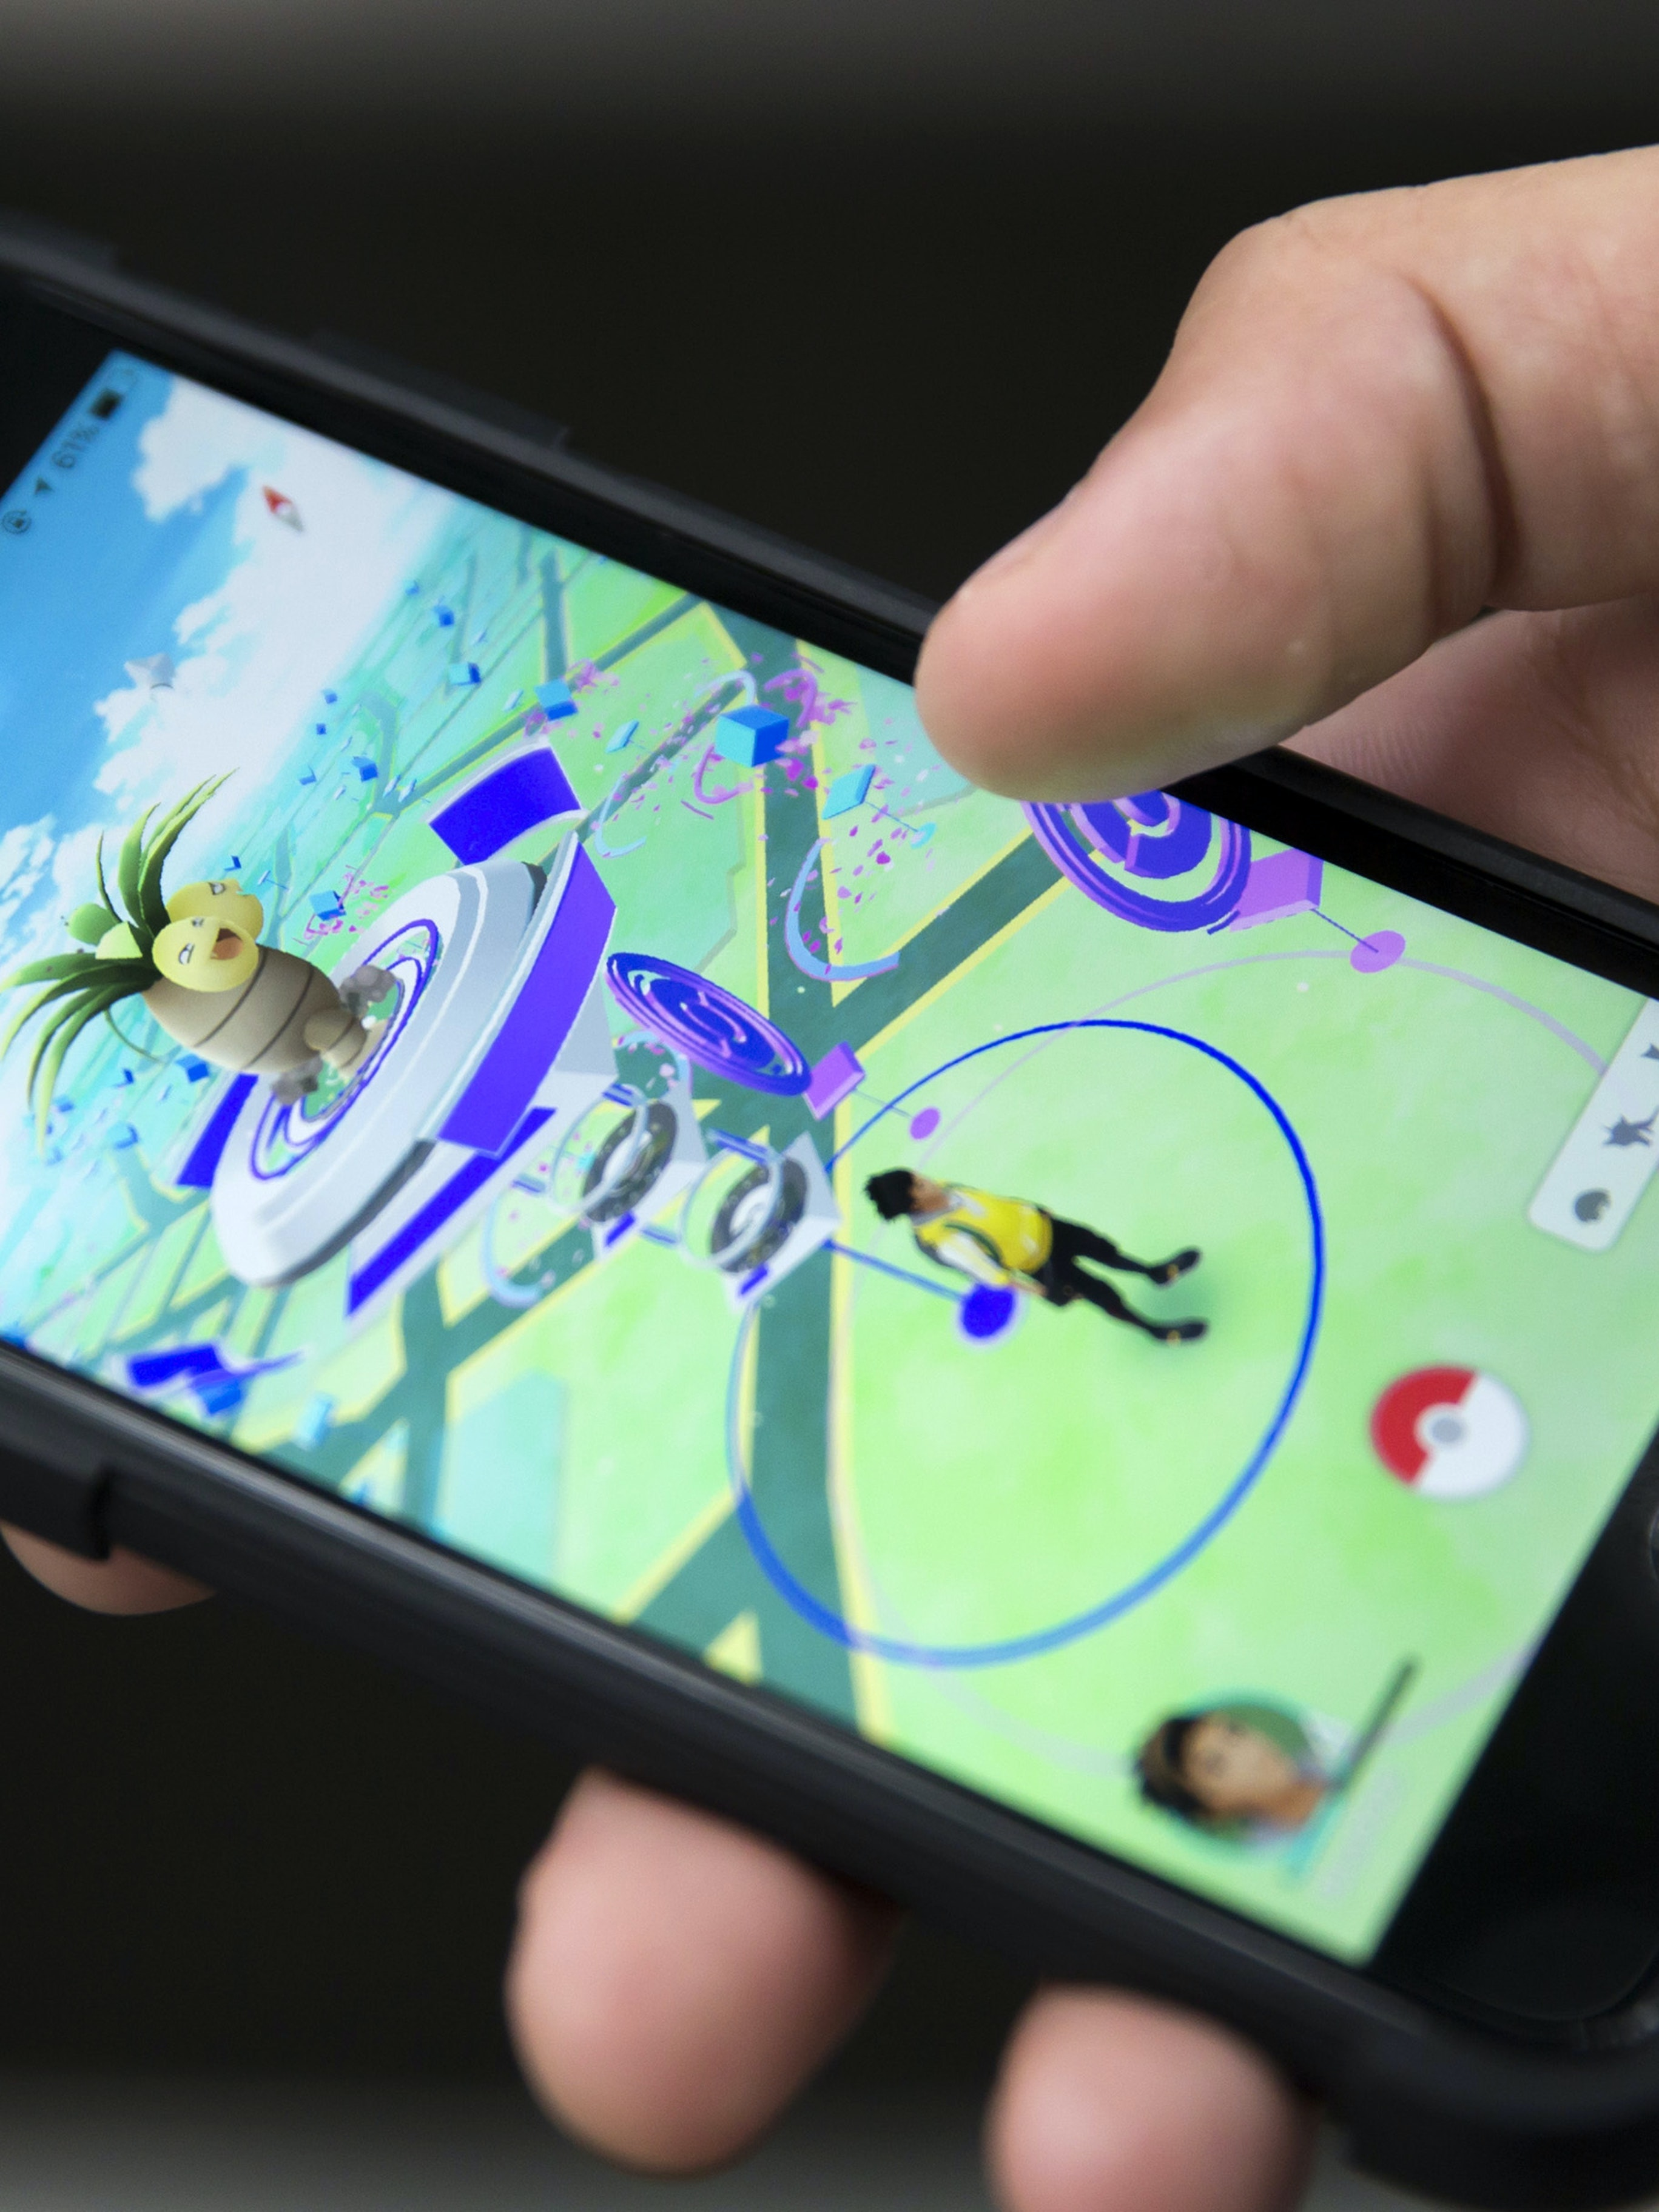 TOKYO, JAPAN - JULY 22:  A man plays Pokemon Go game on a smartphone on July 22, 2016 in Tokyo, Japan. The Japanese version of the game app Pokemon Go was released on July 22, 2016. Japan McDonalds' 3,000 restaurants in Japan will be turned into Pokemon gyms in collaboration with the fast-food chain.  (Photo by Tomohiro Ohsumi/Getty Images)